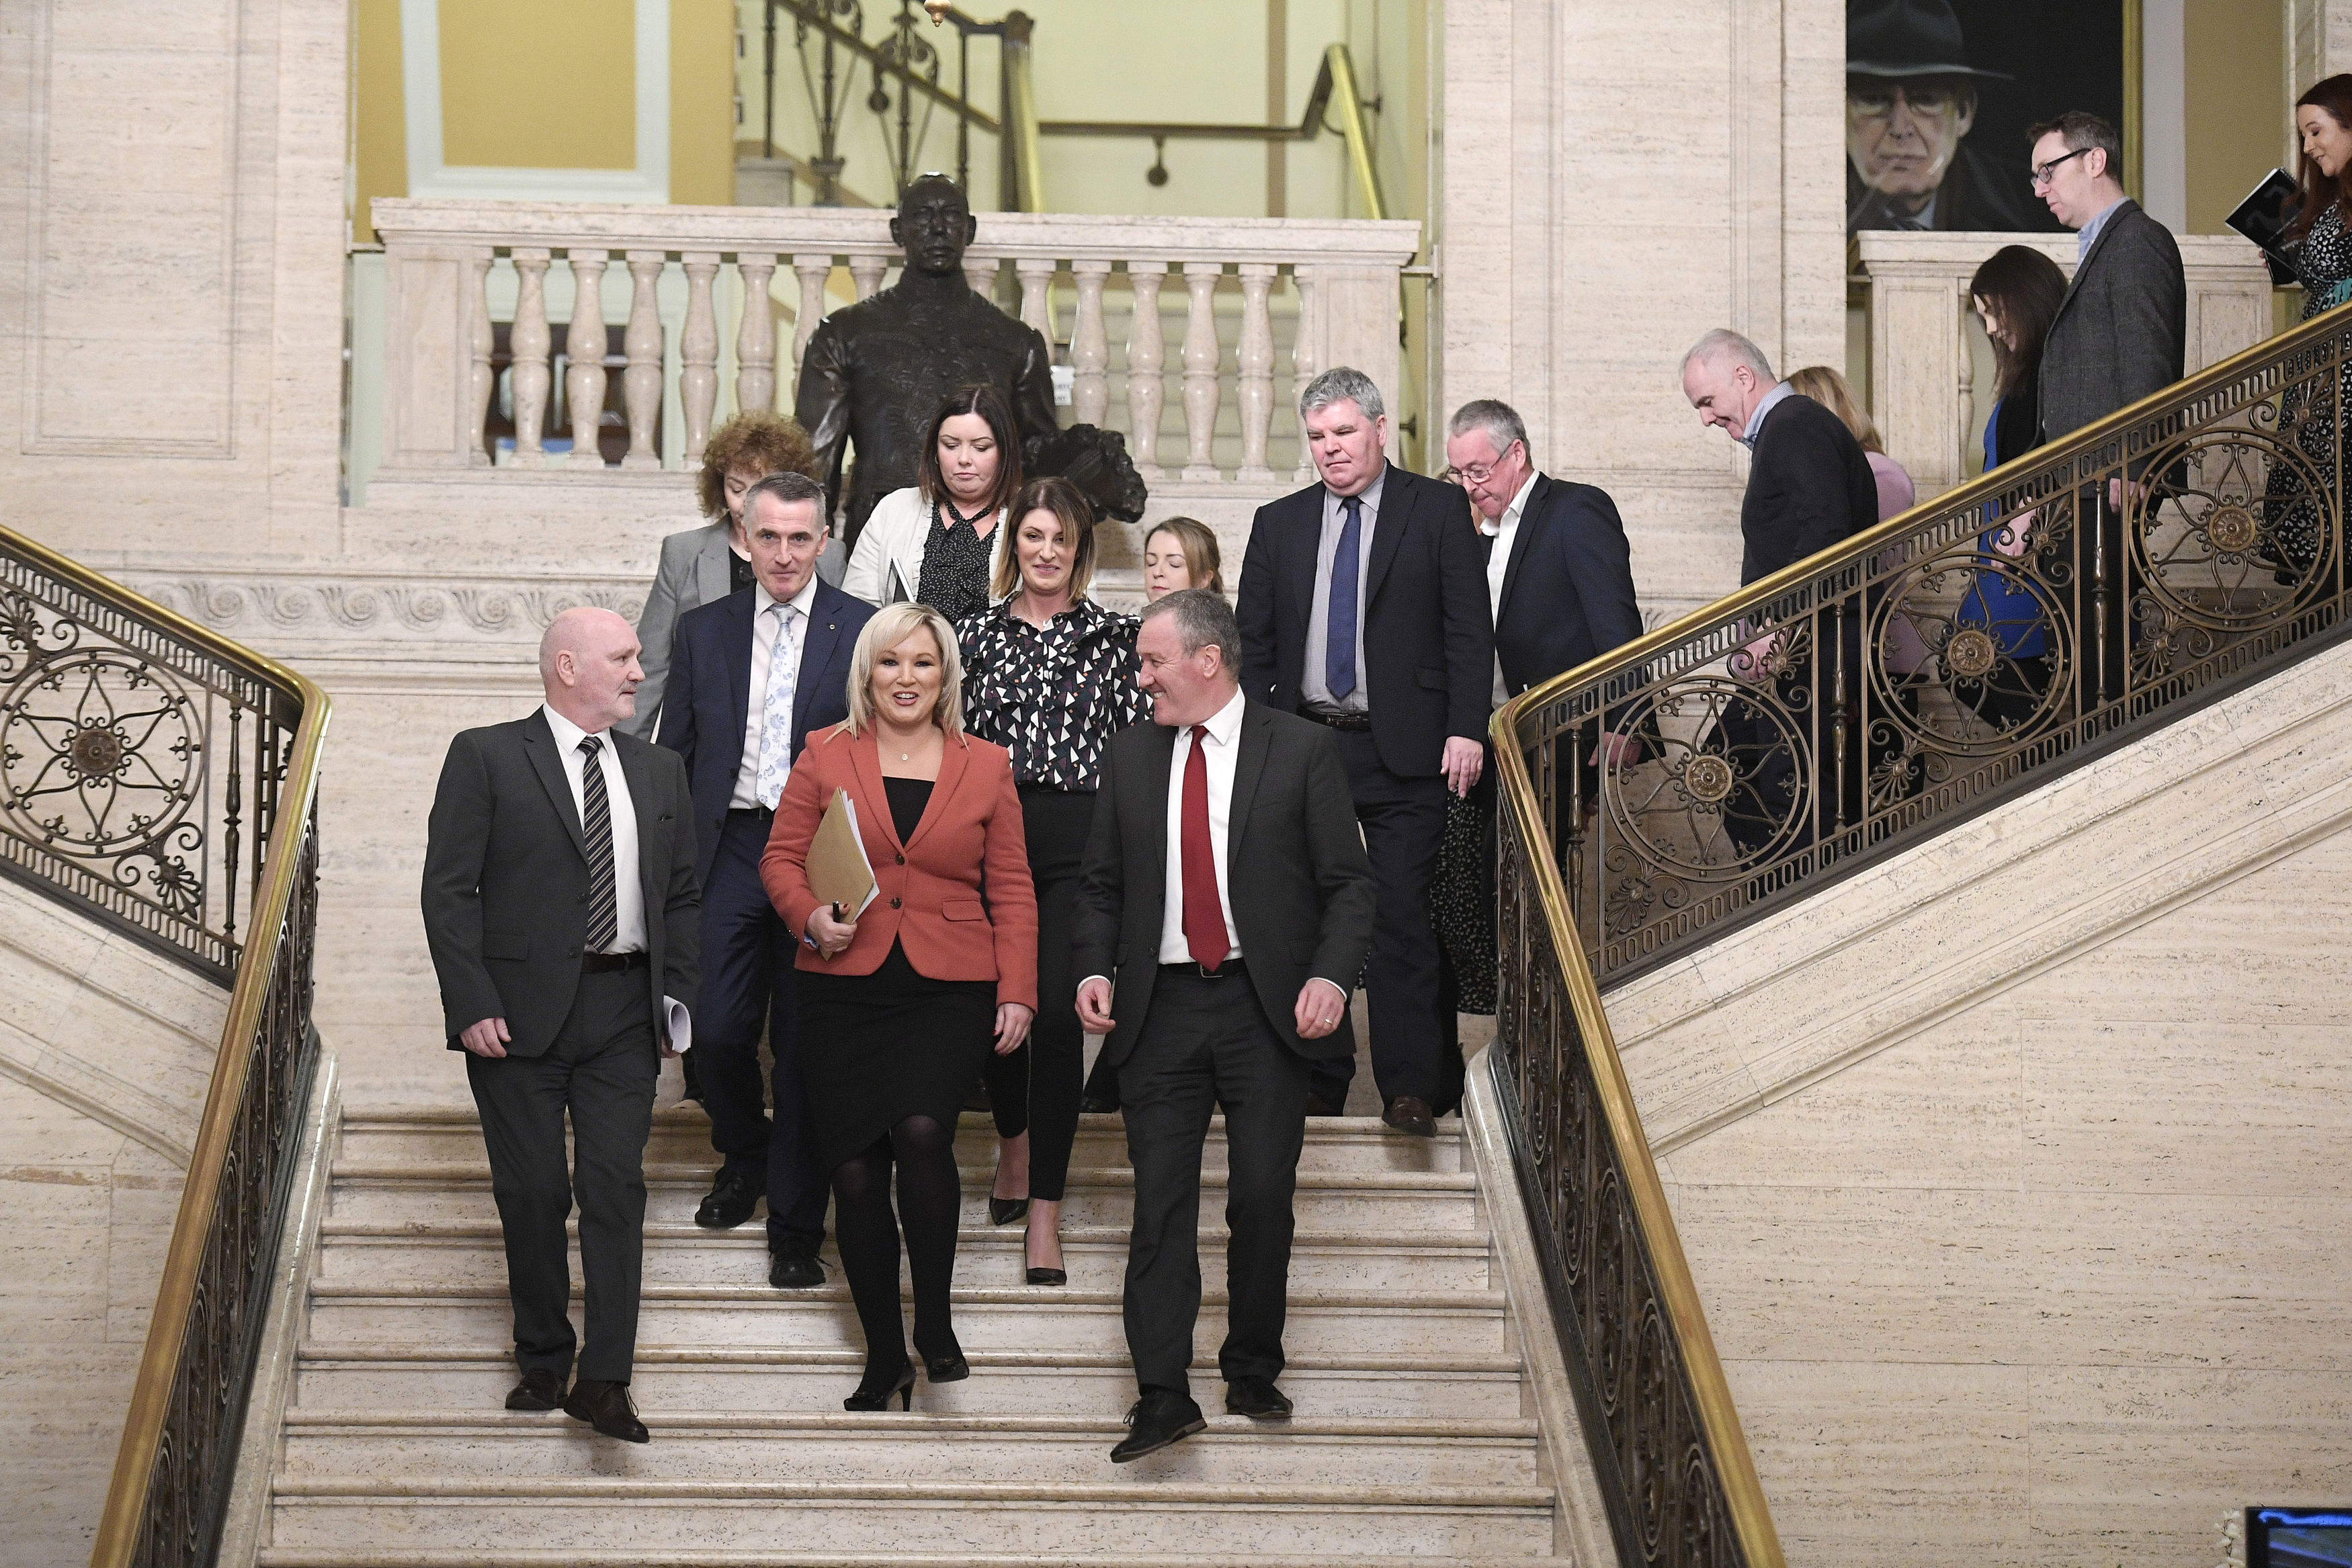 Michelle O'Neill of Sinn Fein leads her party into the chamber at Parliament Buildings, Stormont, Northern Ireland, on Jan. 11, 2020.